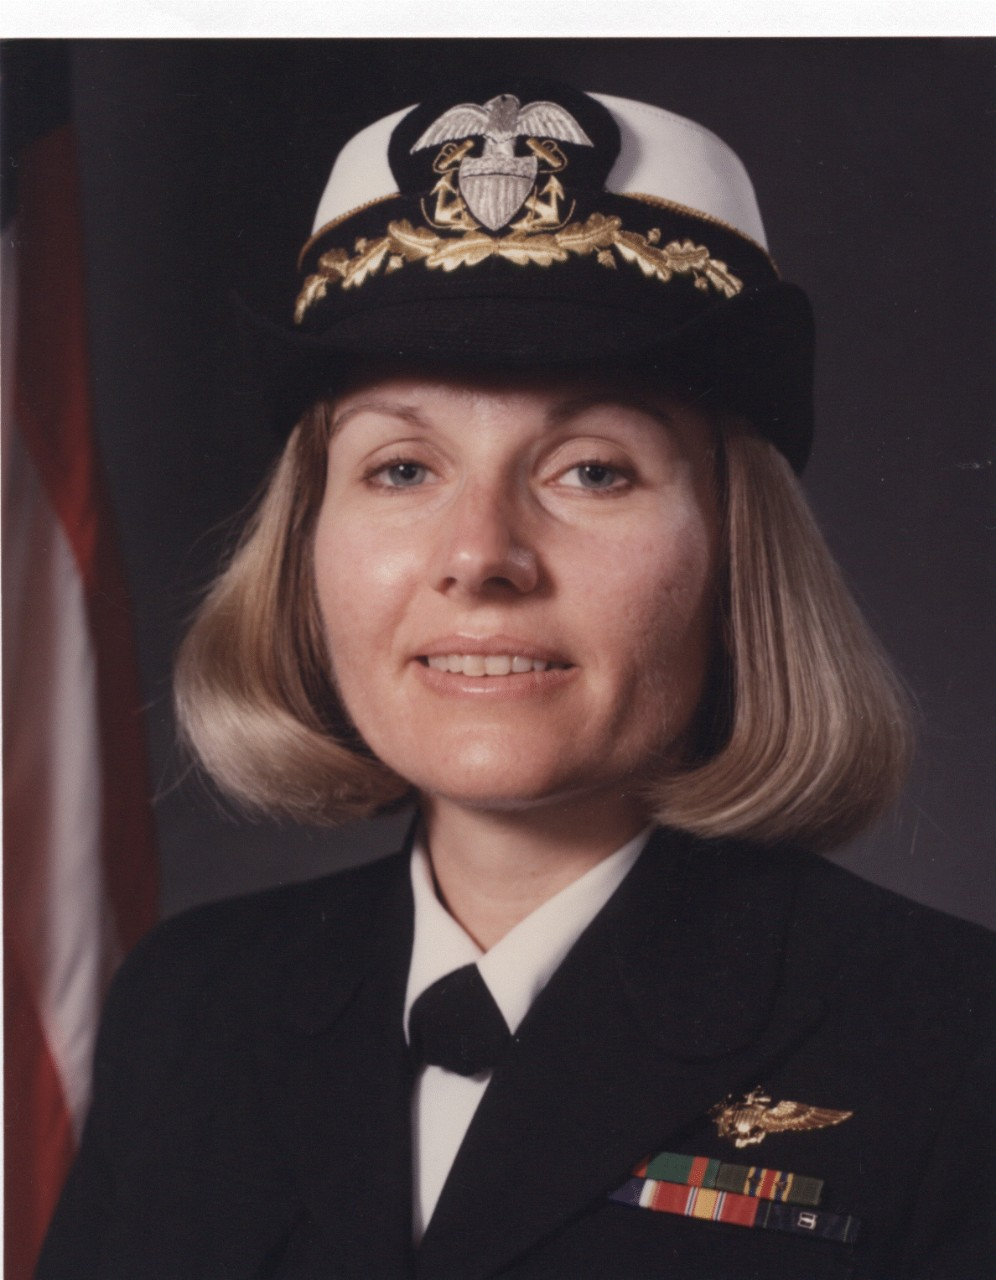 Captain Rosemary Mariner, USN (Retired), 1953 ─ 24 January 2019